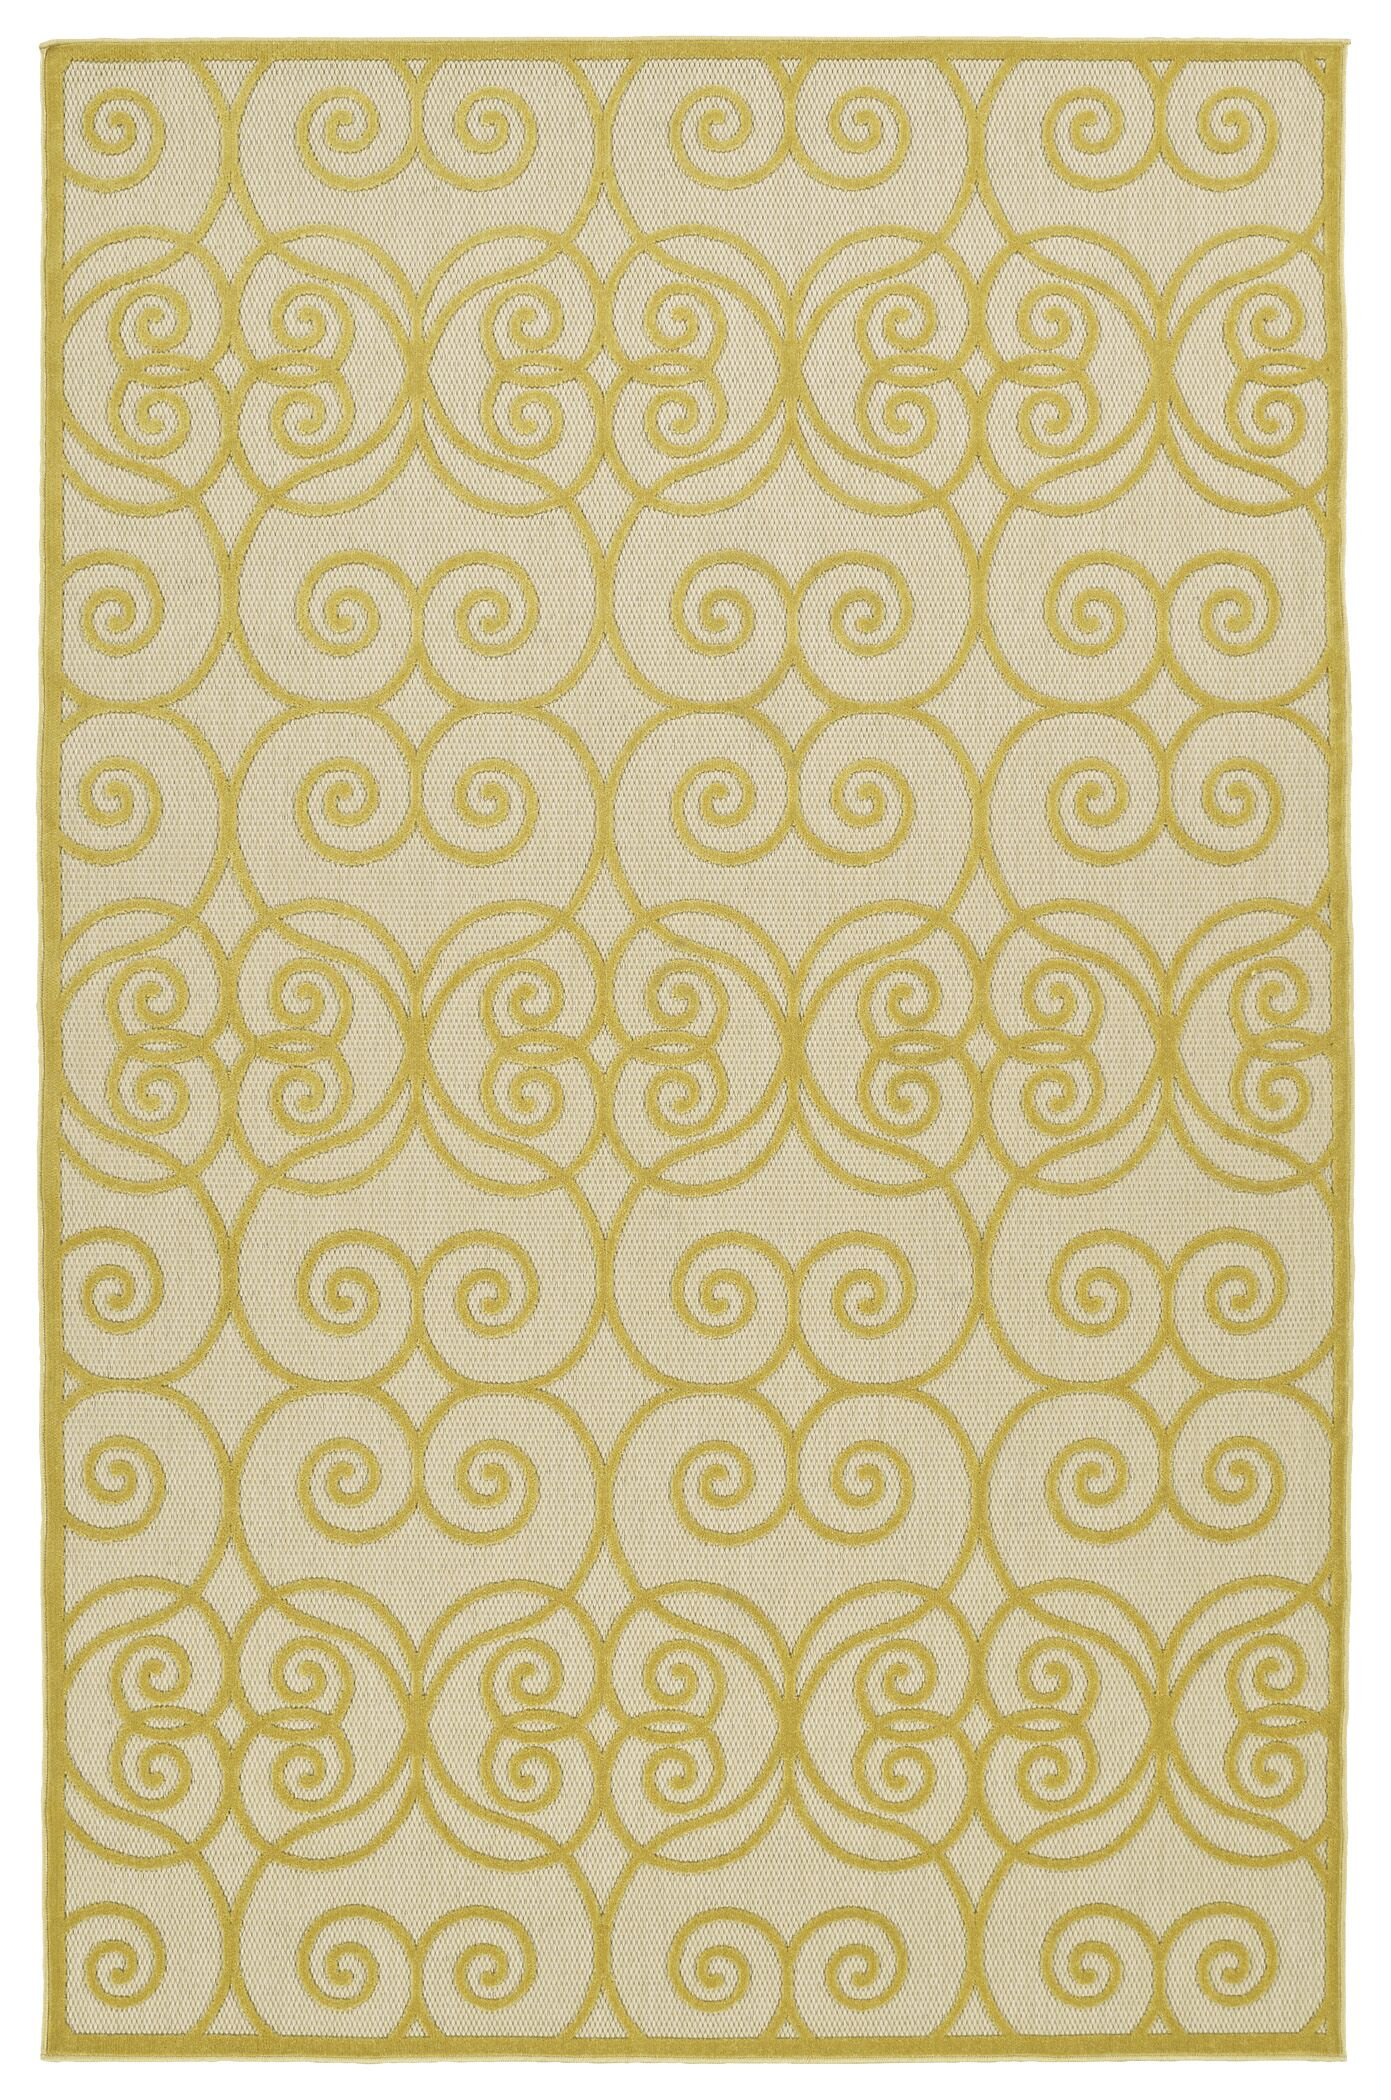 Covedale Gold Indoor/Outdoor Area Rug Rug Size: Rectangle 8'8